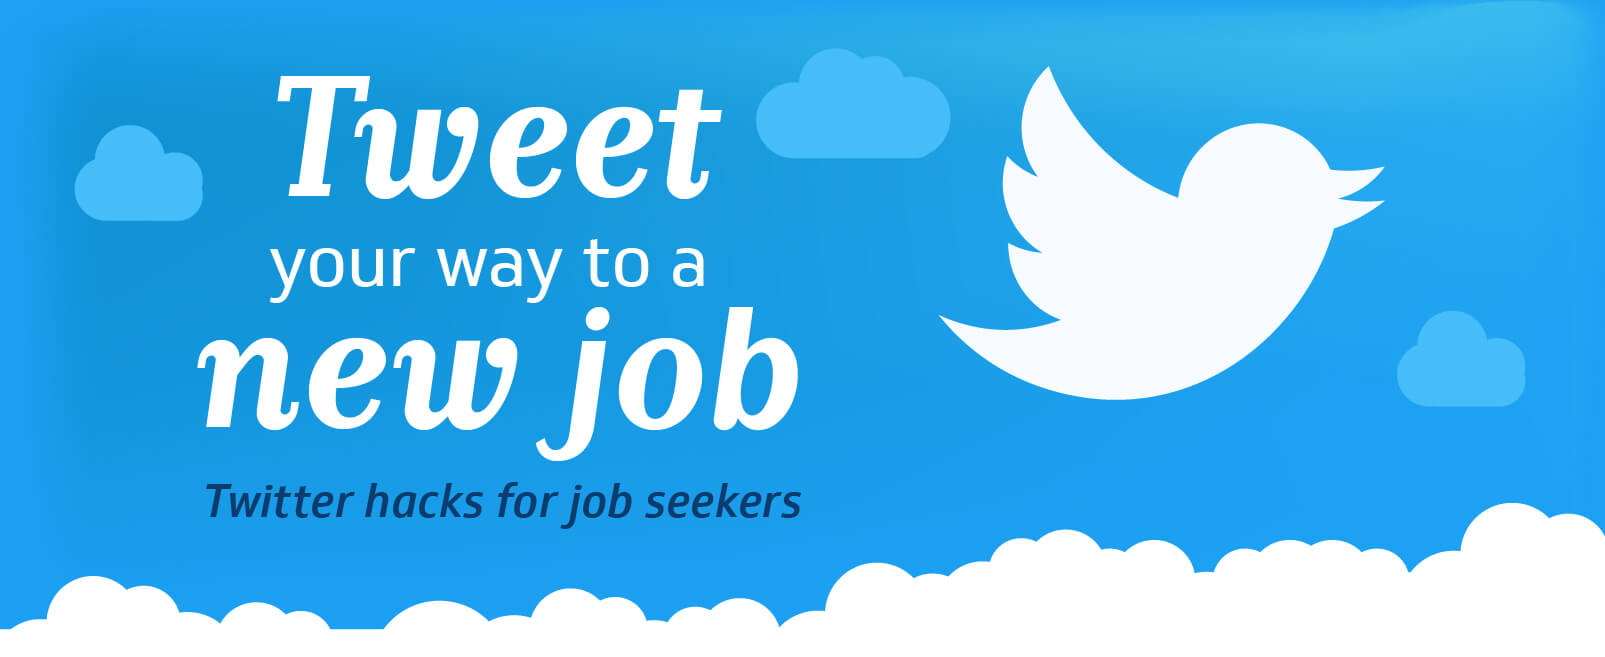 twitter hacks for job seekers